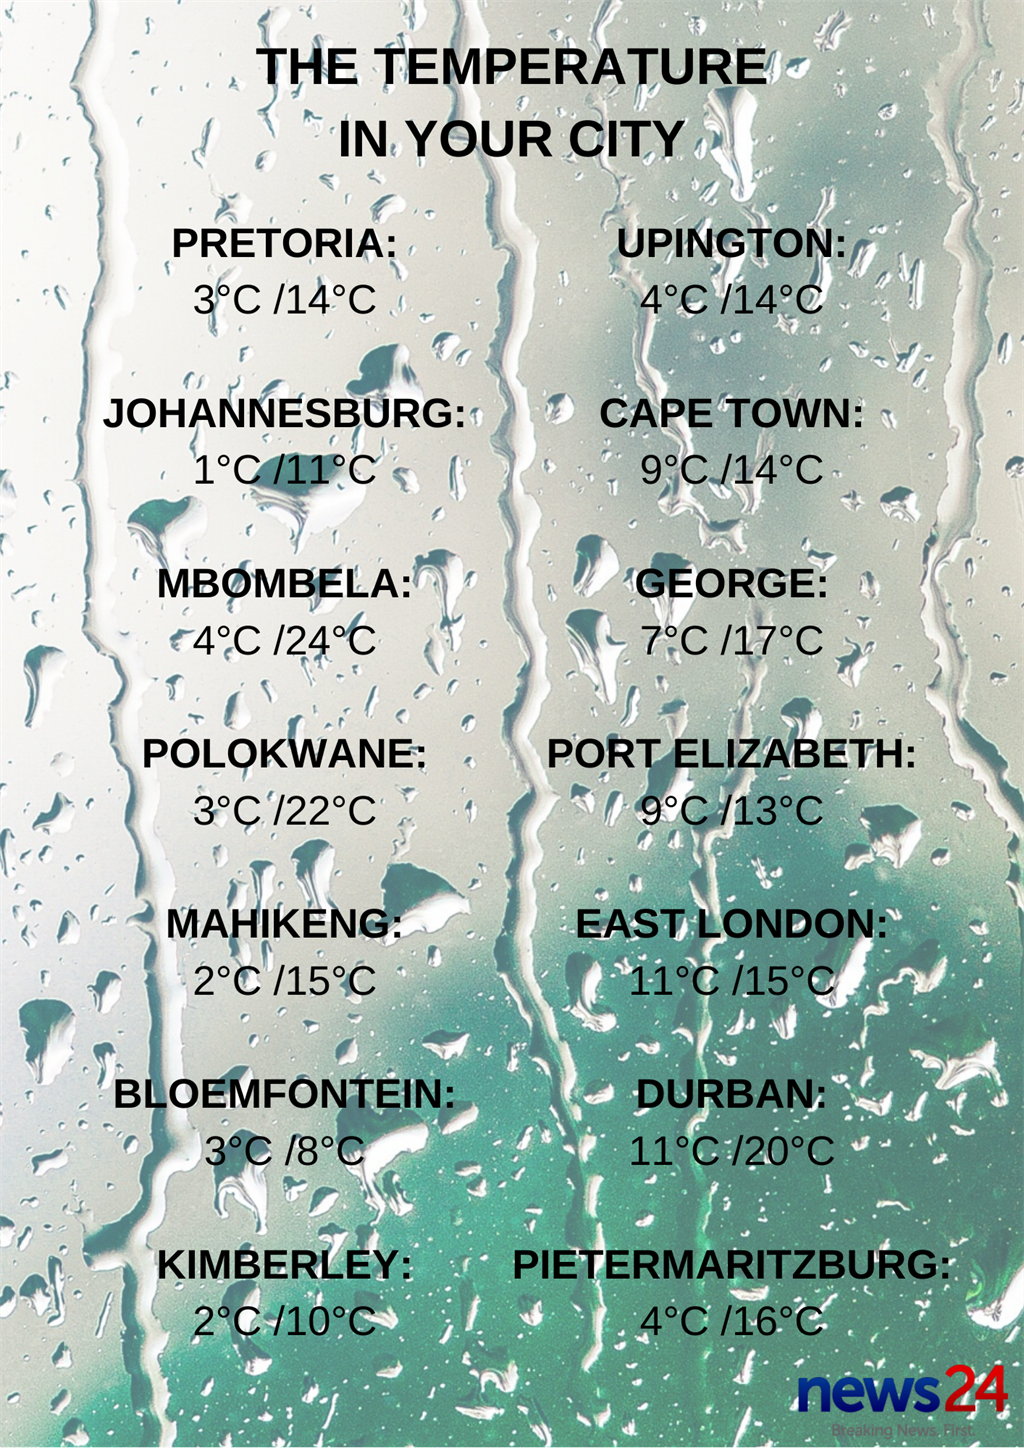 Tuesday's weather: More miserable conditions, with possible snowfall and storm surge set for parts of SA - News24